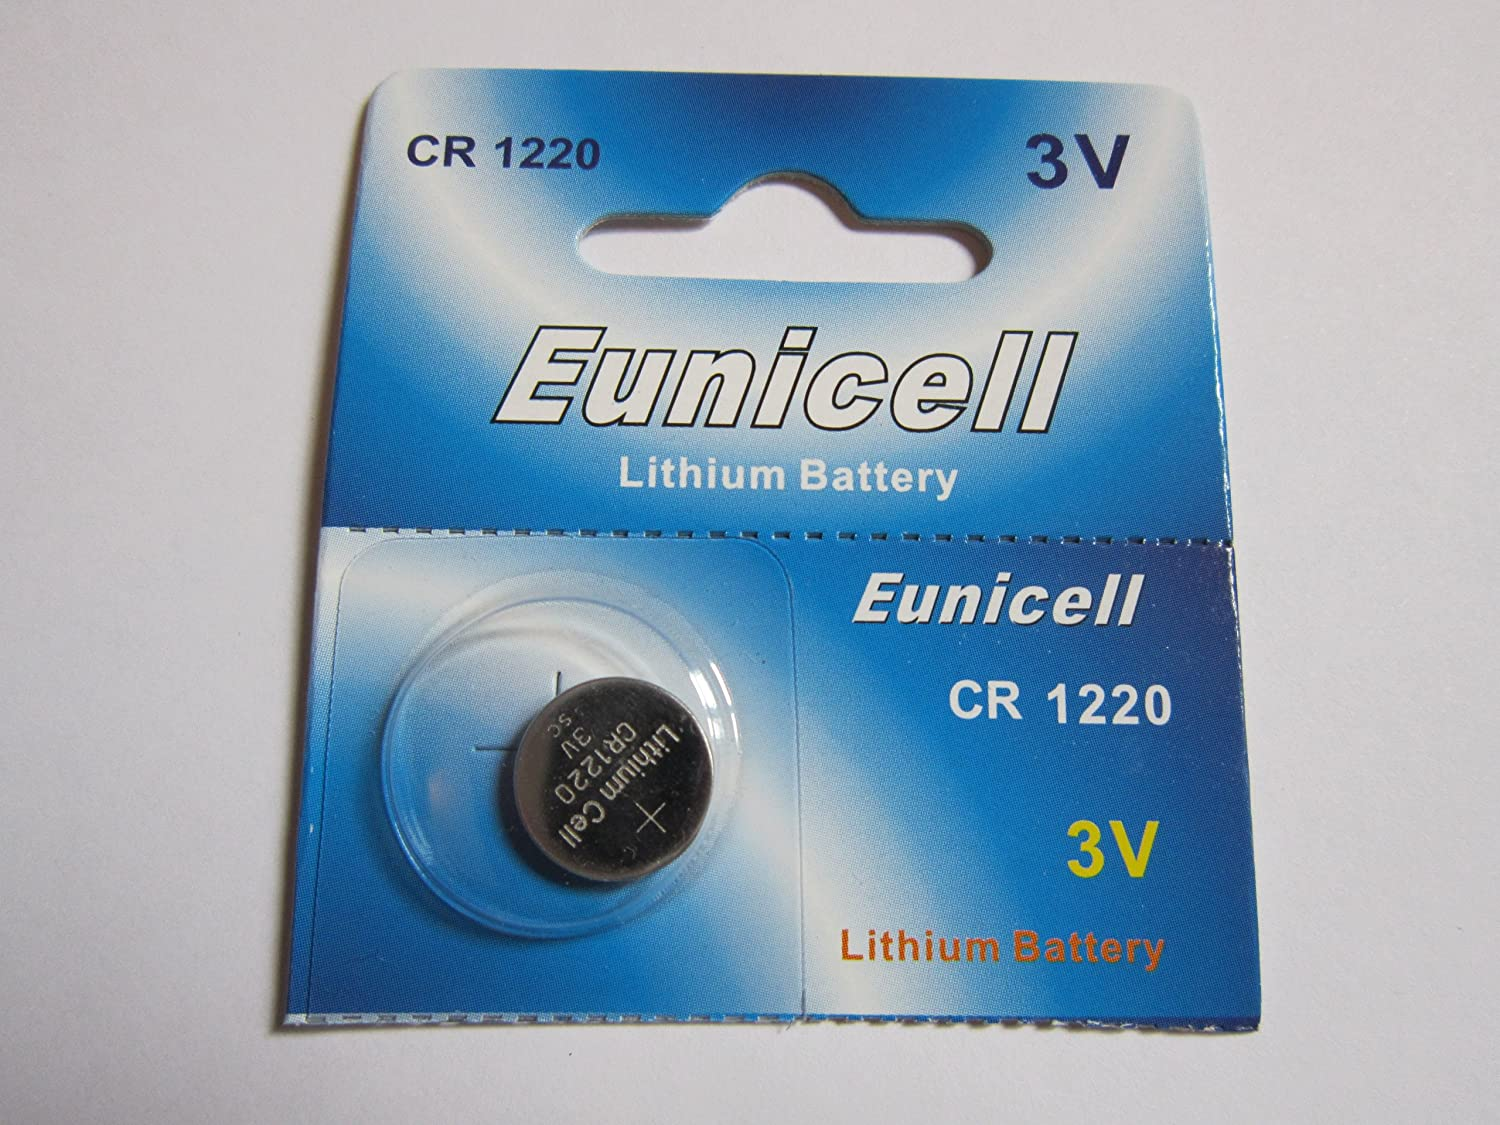 1 Pcs CR1220 CR 1220 - 3V Eunicell Lithium Button Cell Battery Batteries - BRAND NEW IN FACTORY PACKAGING